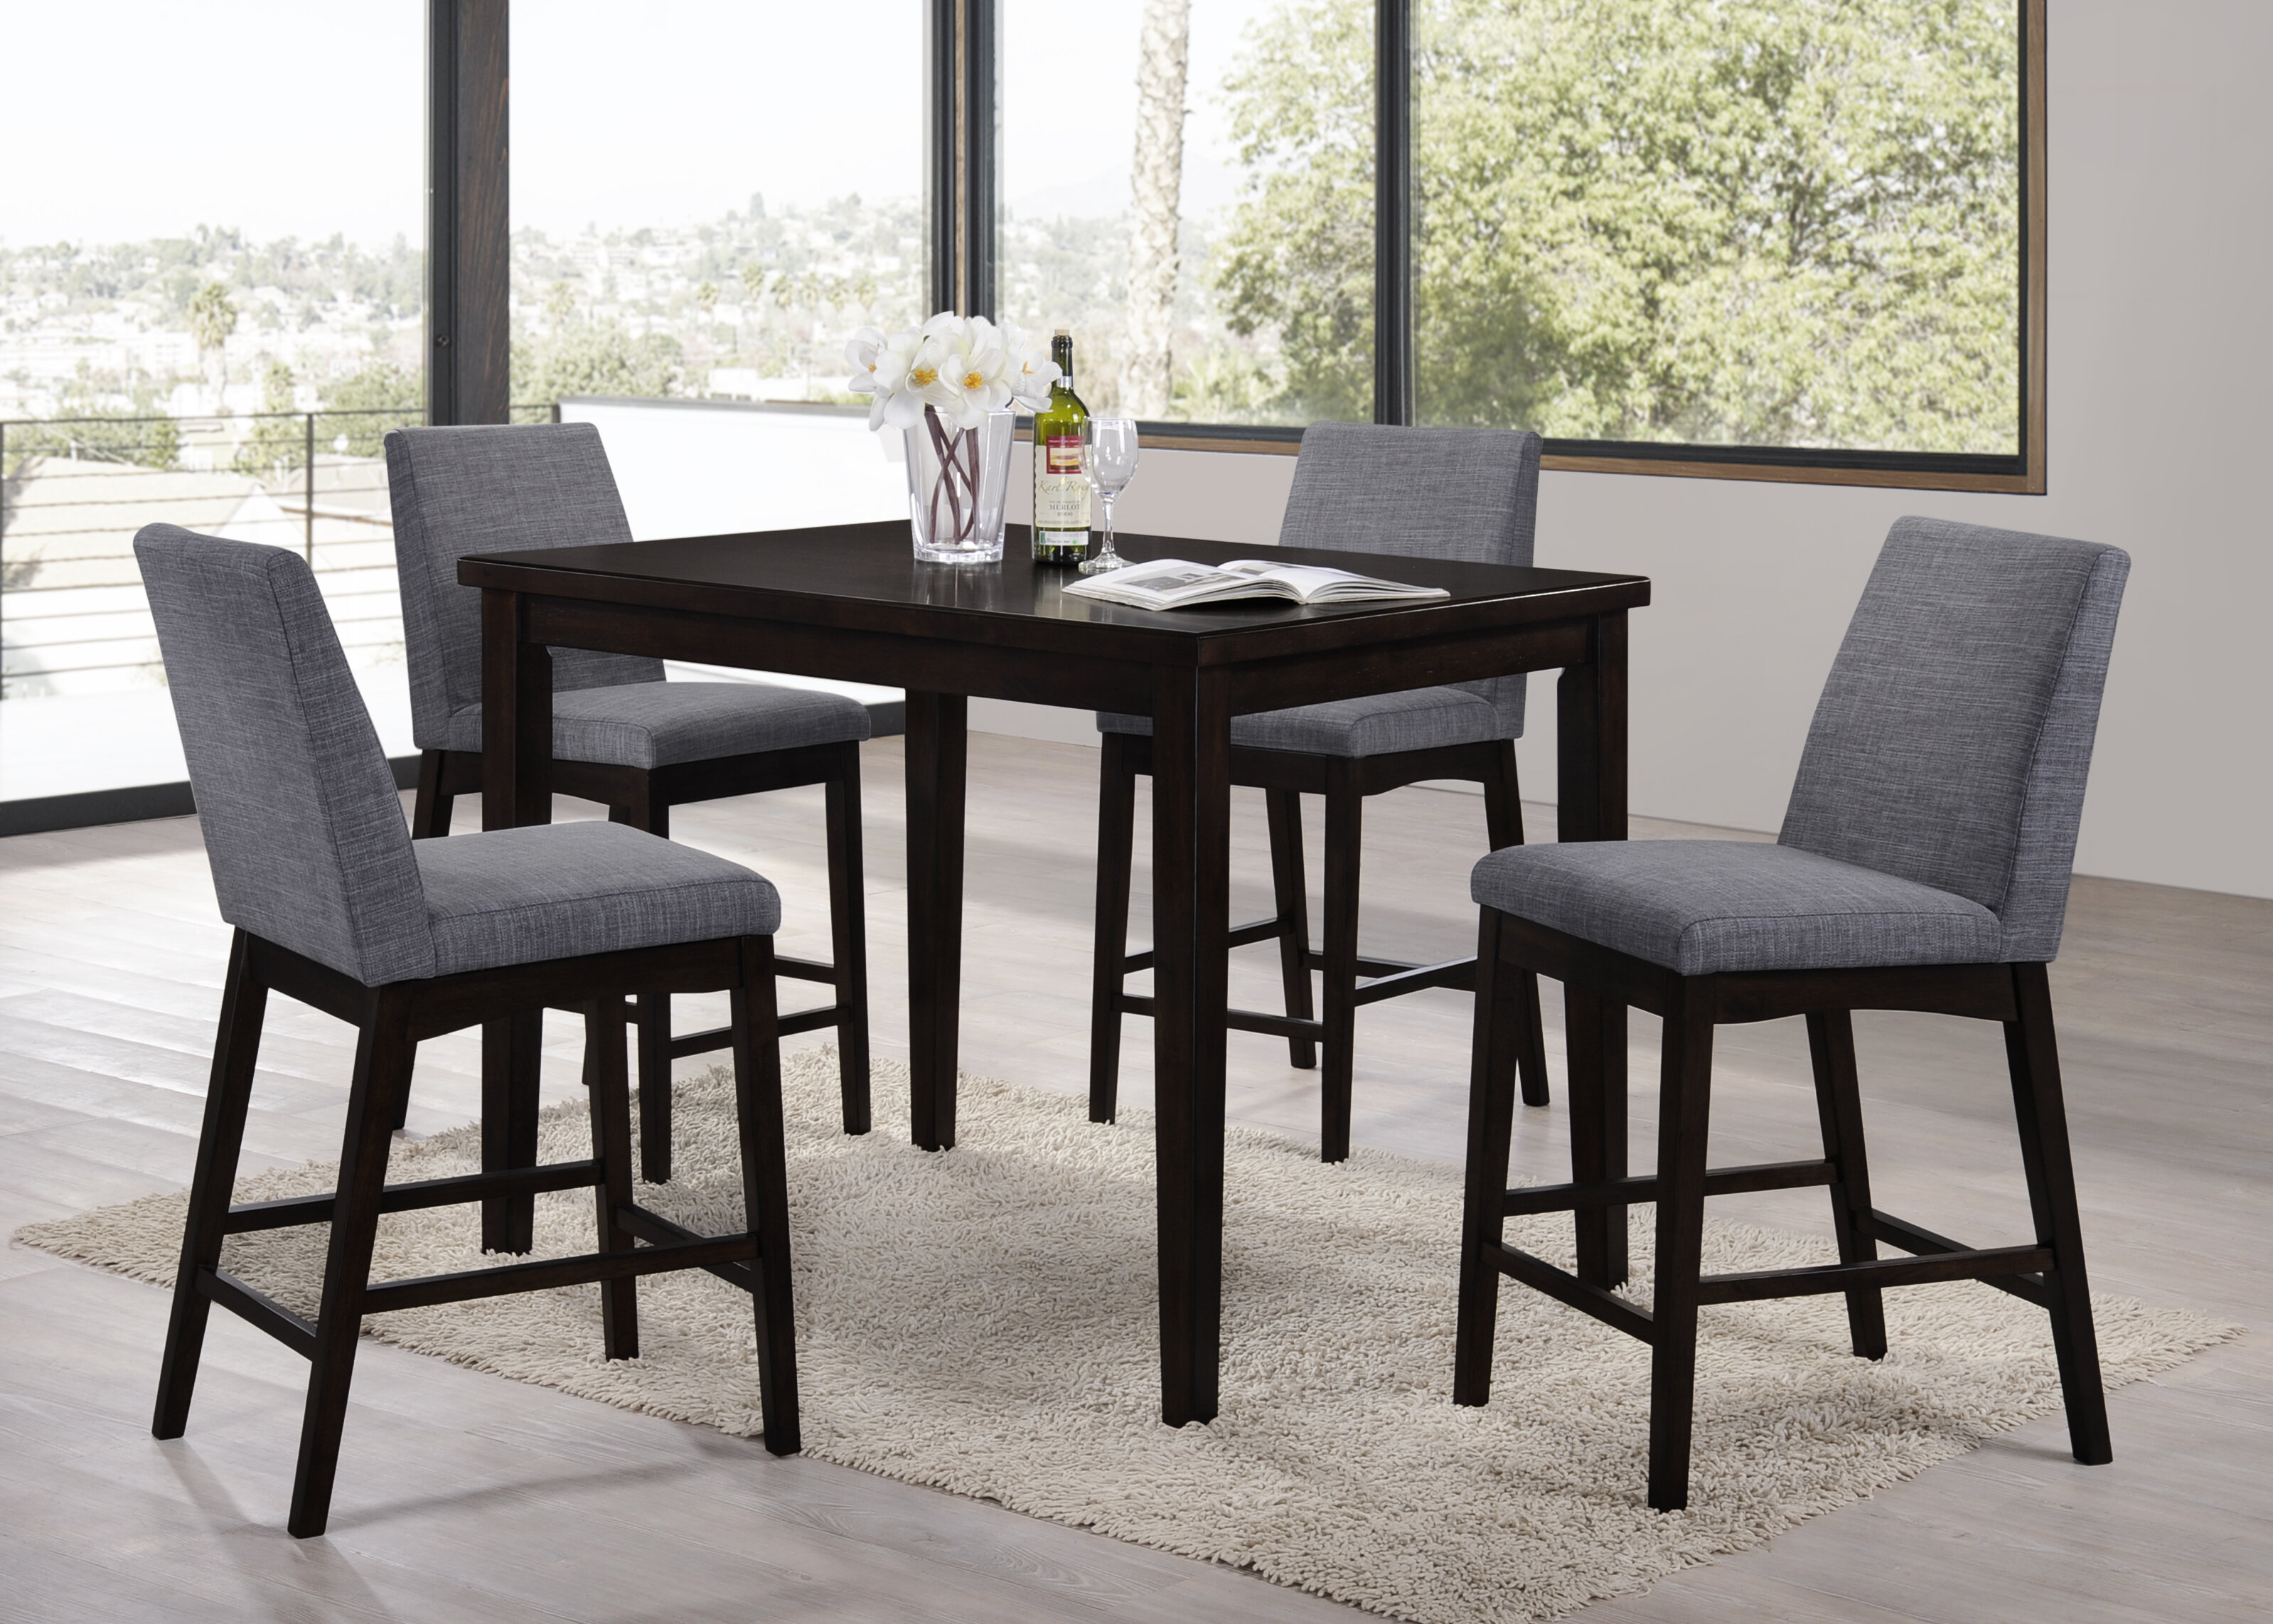 Lovely 5 Piece Bar Height Patio Set